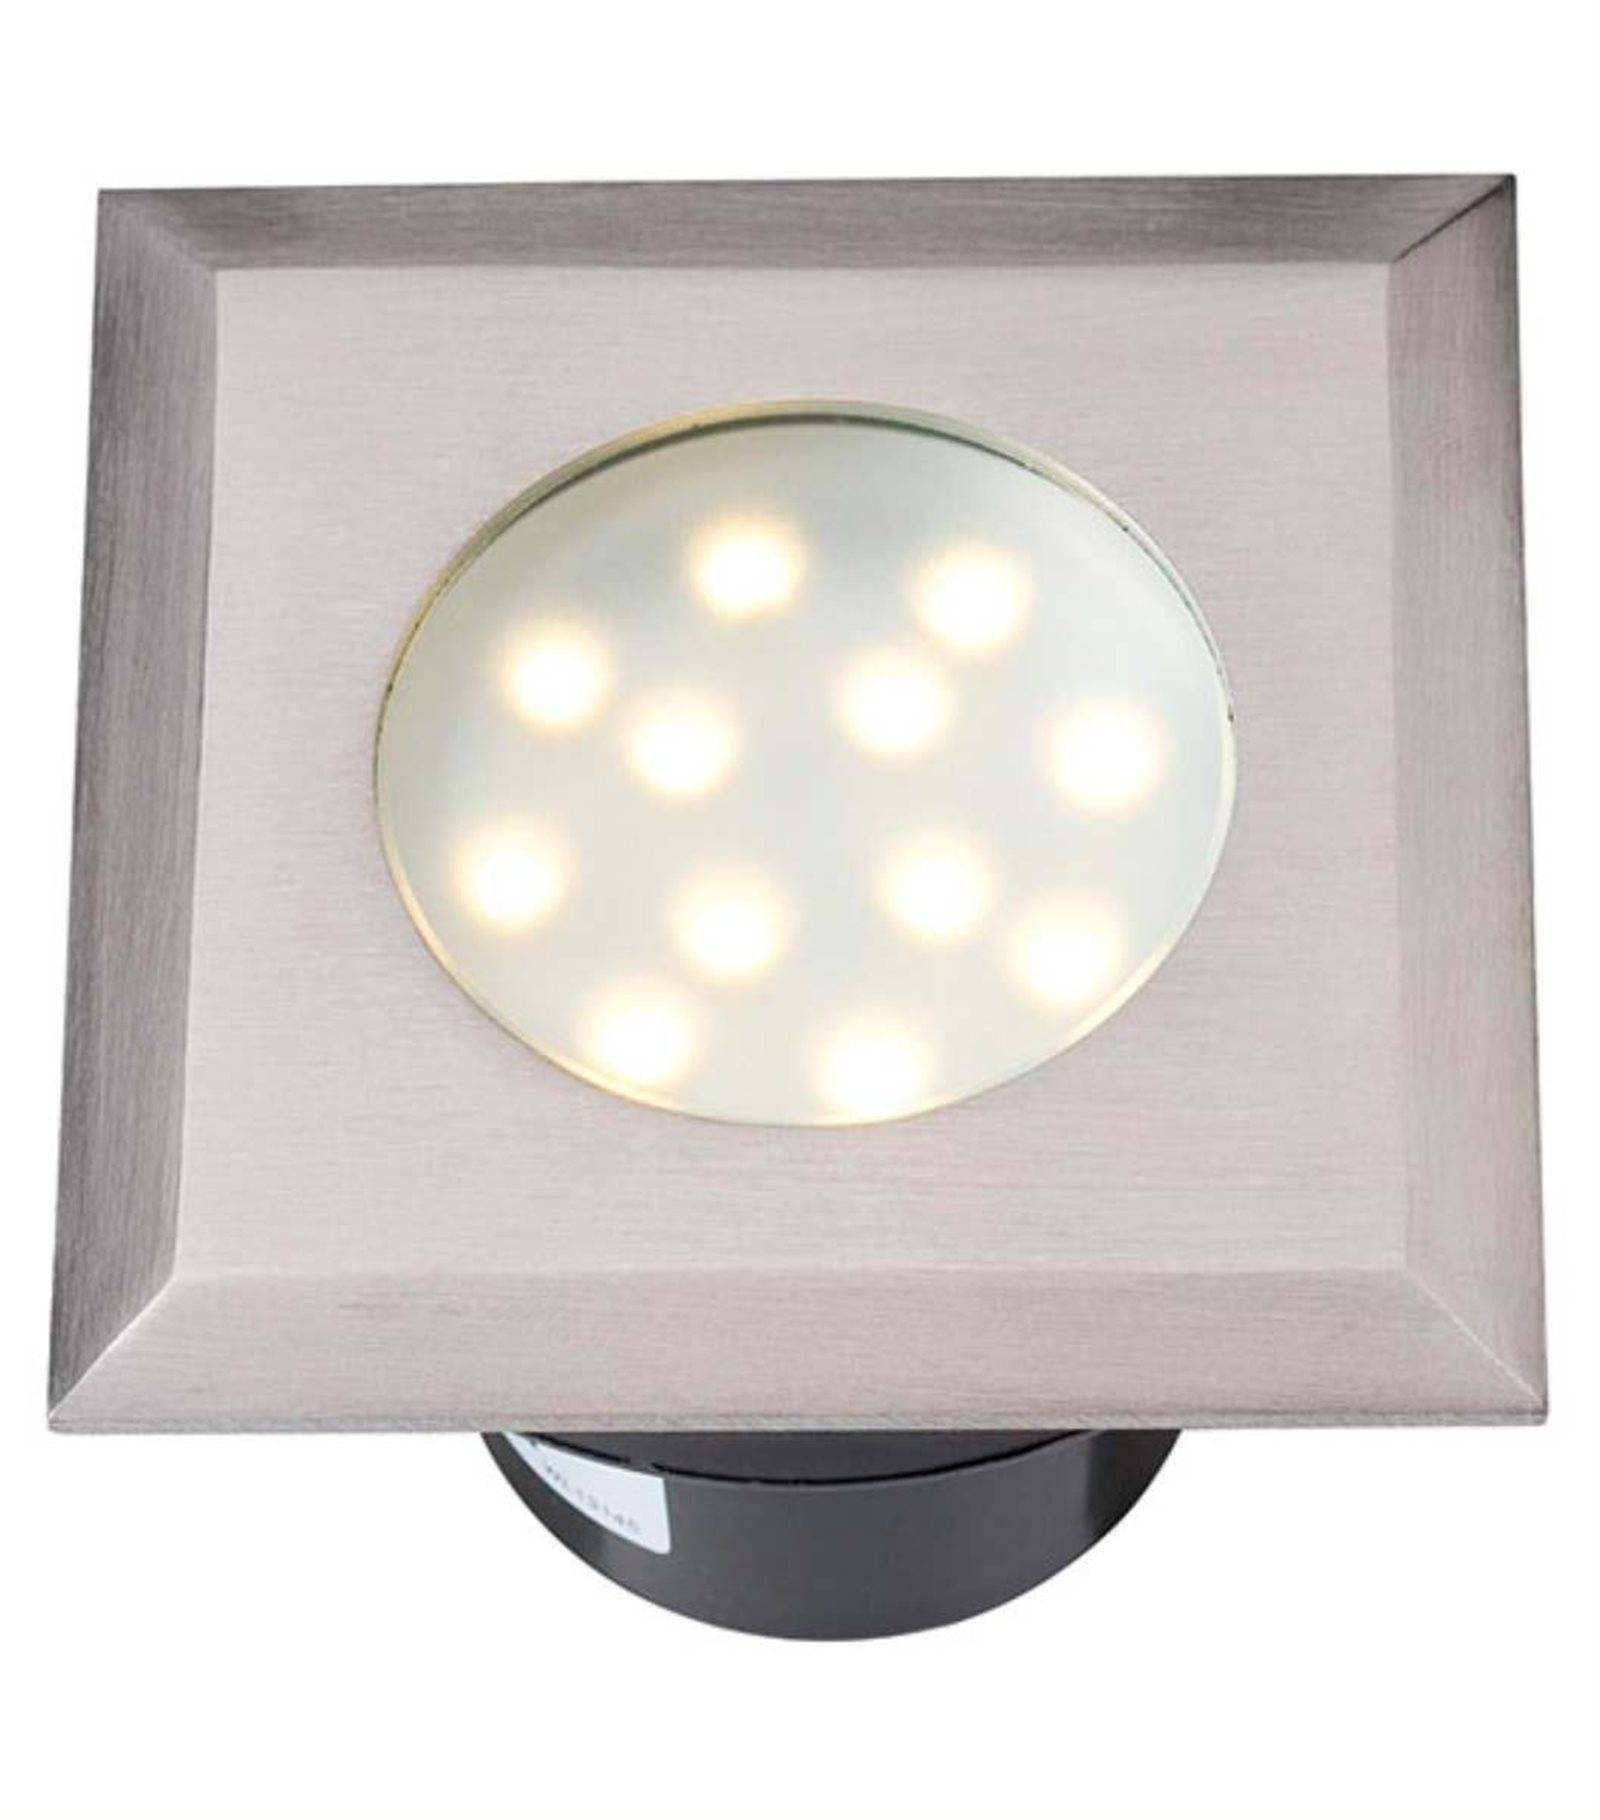 Spot Led Exterieur Osram Spot Encastrable Elara 2w Platine Led Ip68 Blanc Chaud